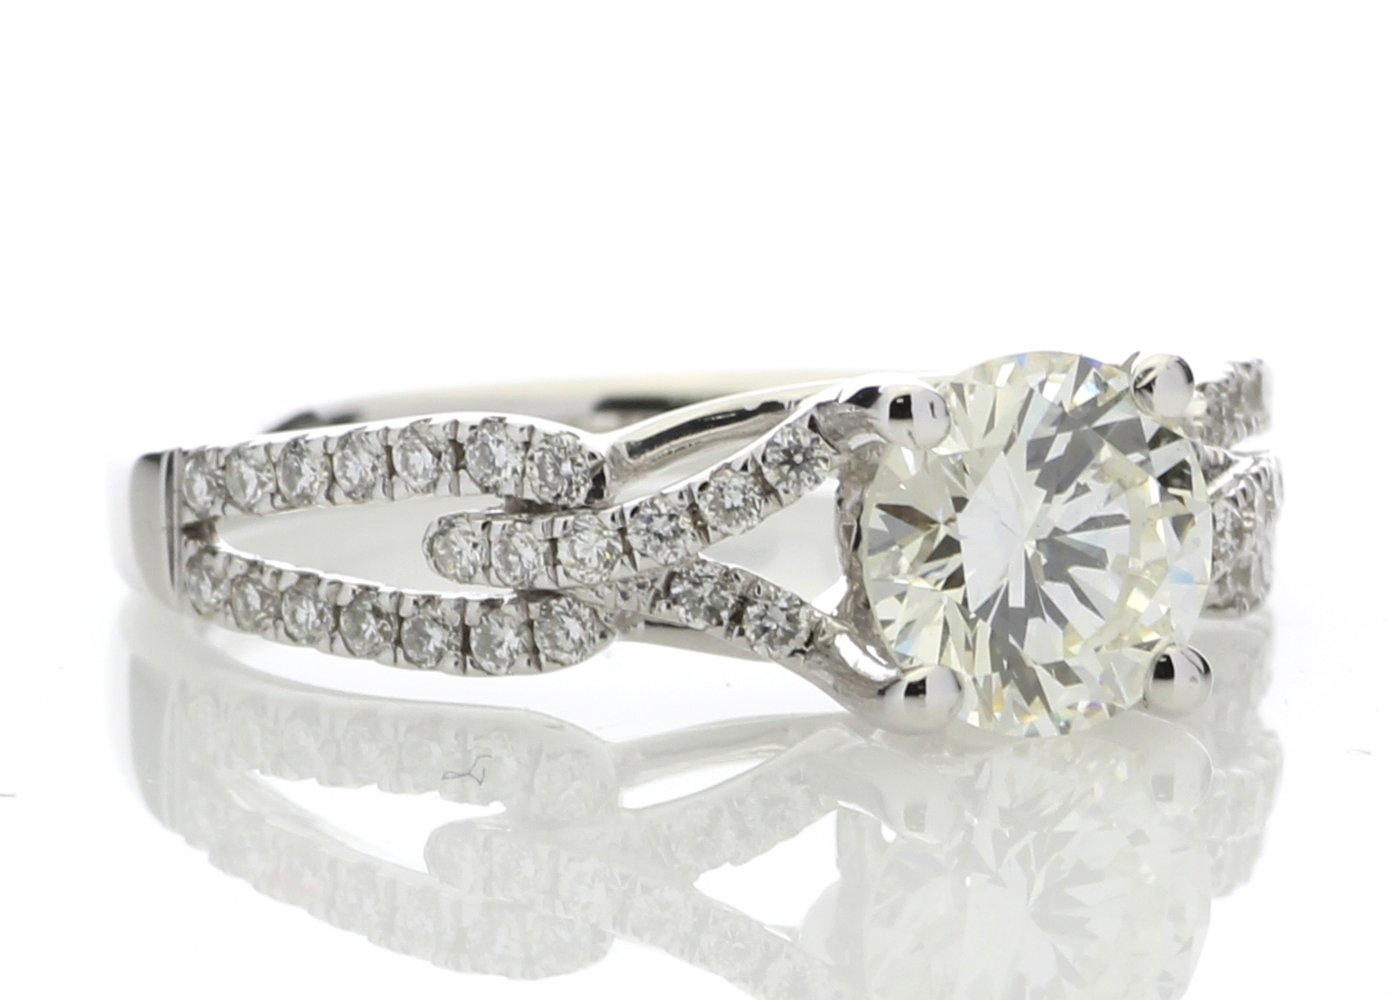 18ct White Gold Claw Set With Stone Set Shoulders Diamond Ring 1.32 Carats - Image 4 of 5